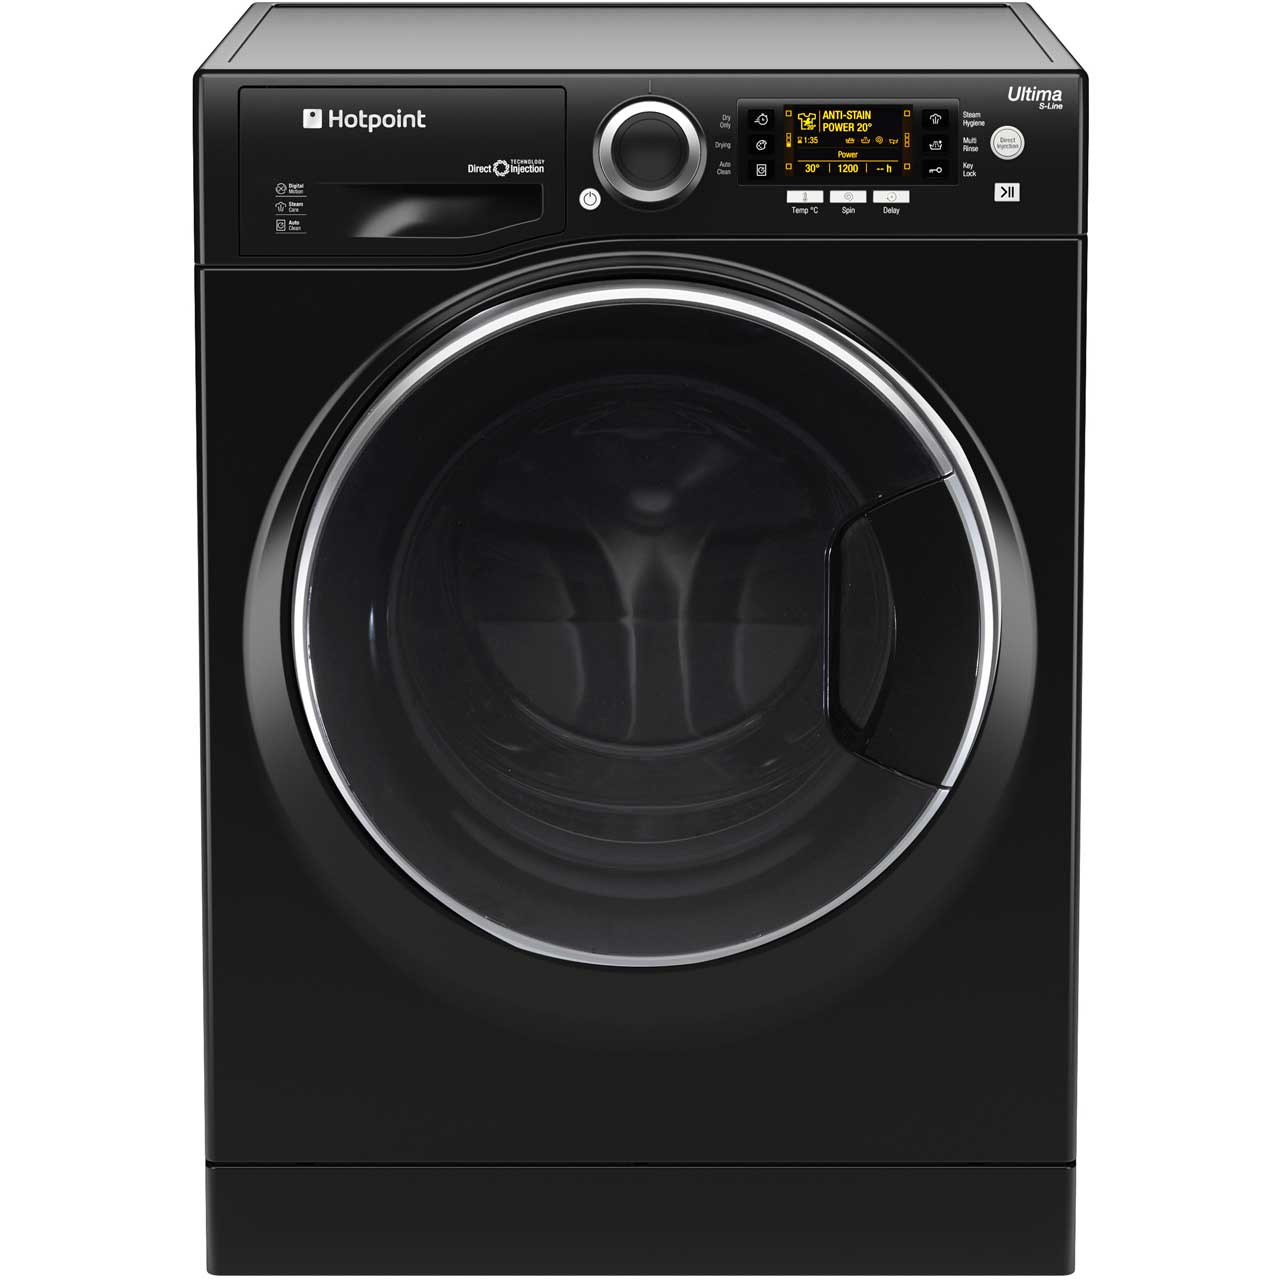 Hotpoint Ultima SLine RD966JKD Free Standing Washer Dryer in Black